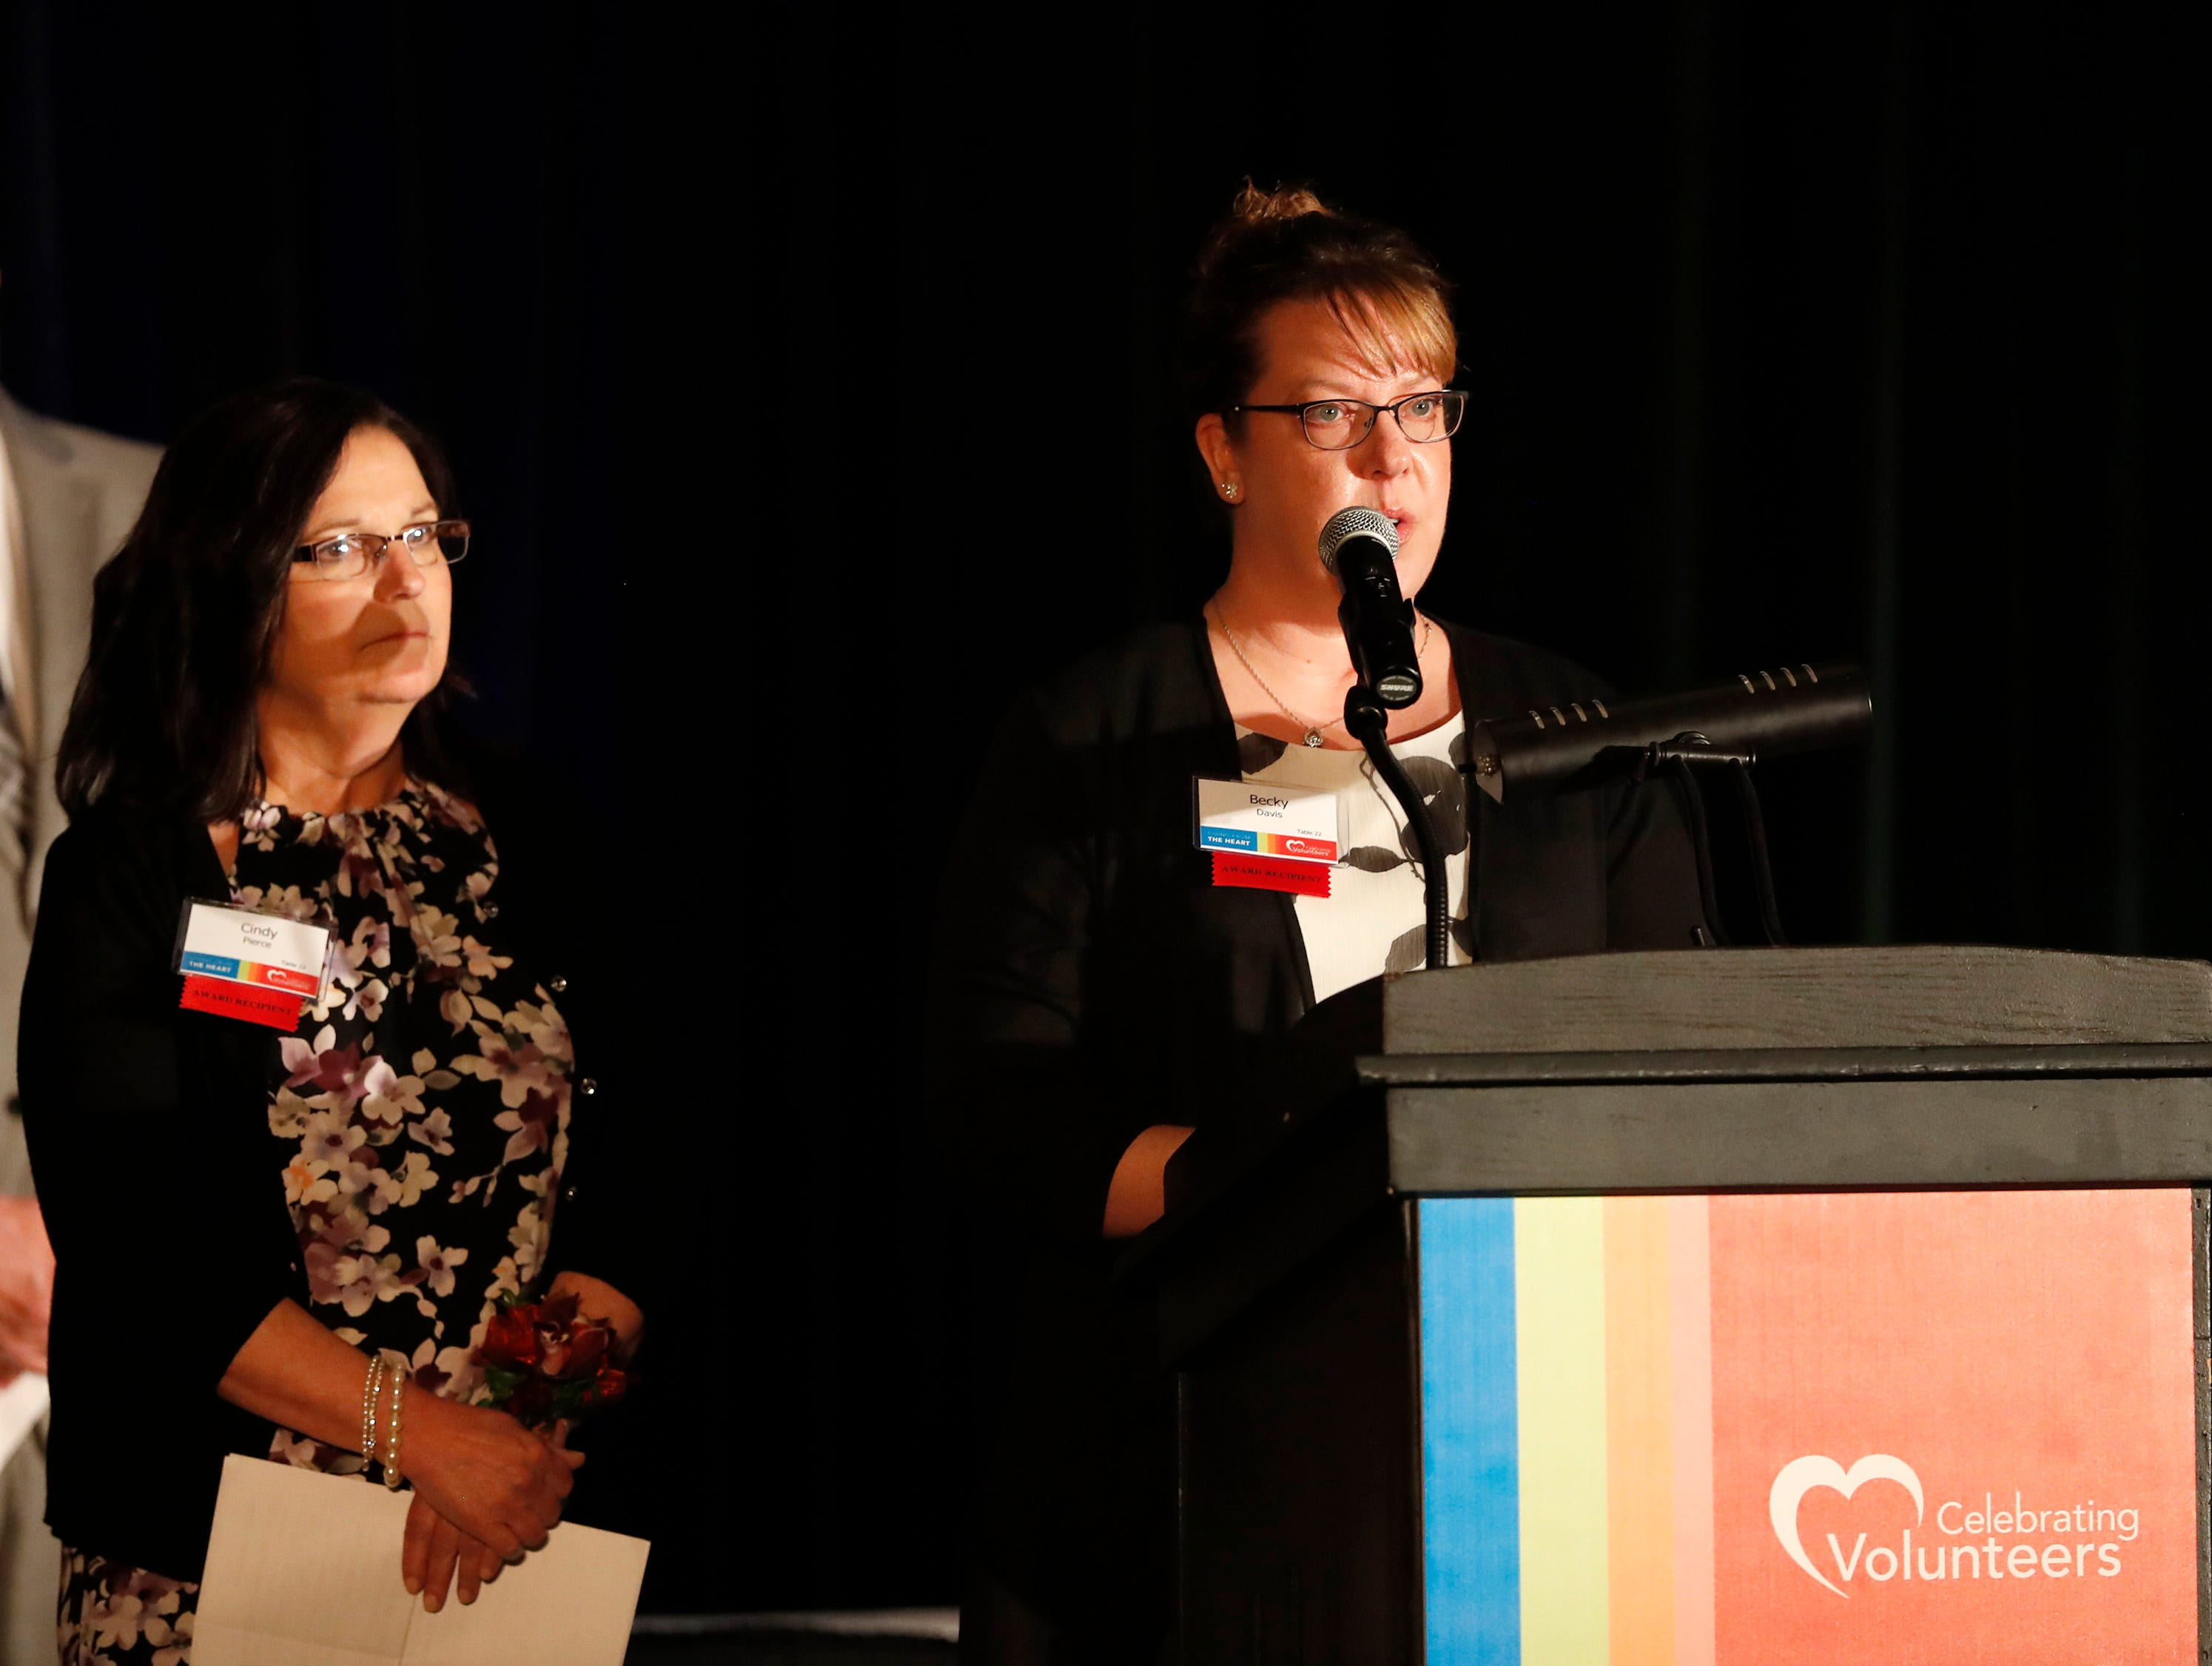 Cindy Pierce and Becky Davis accept the Business Partnership Award on behalf of Community First Credit Union during the 22nd Annual Celebrating Volunteers Community Gala Wednesday, May 1, 2019, at the Red Lion Hotel Paper Valley in Appleton, Wis. The Sexual Assault Crisis Center was the co-recipient of the award.Danny Damiani/USA TODAY NETWORK-Wisconsin